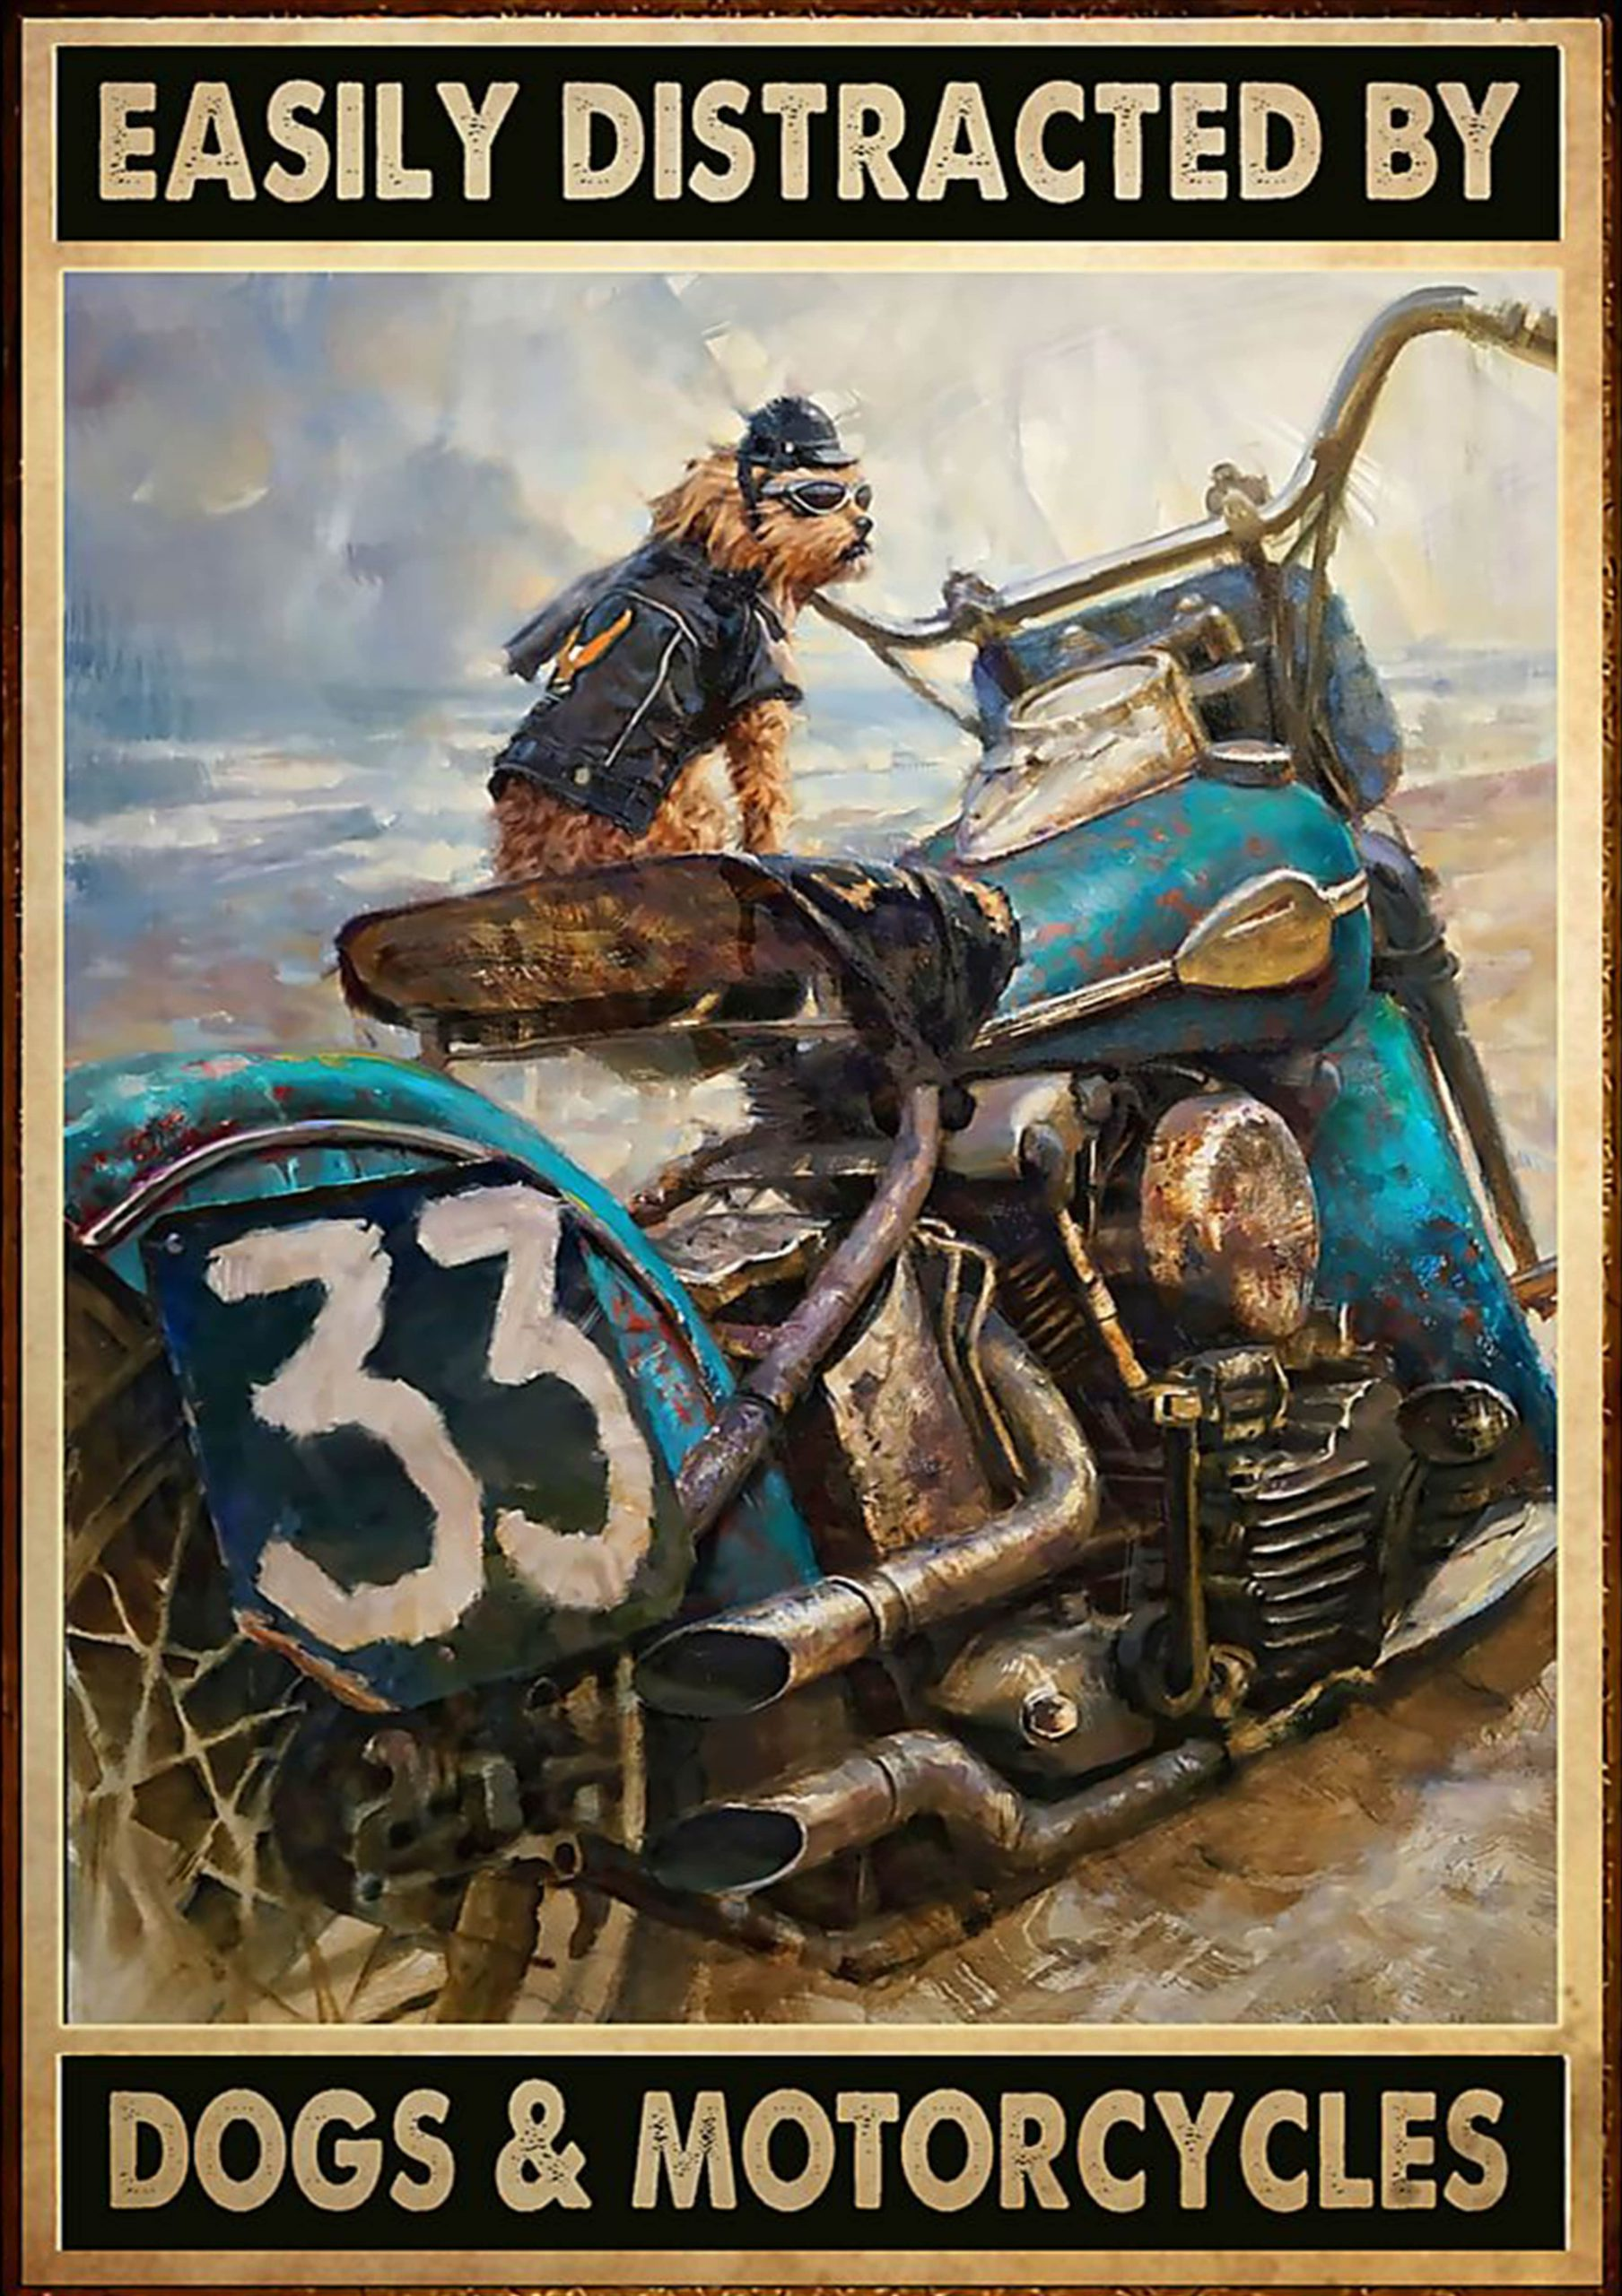 vintage easily distracted by dogs and motorcycles poster 1 - Copy